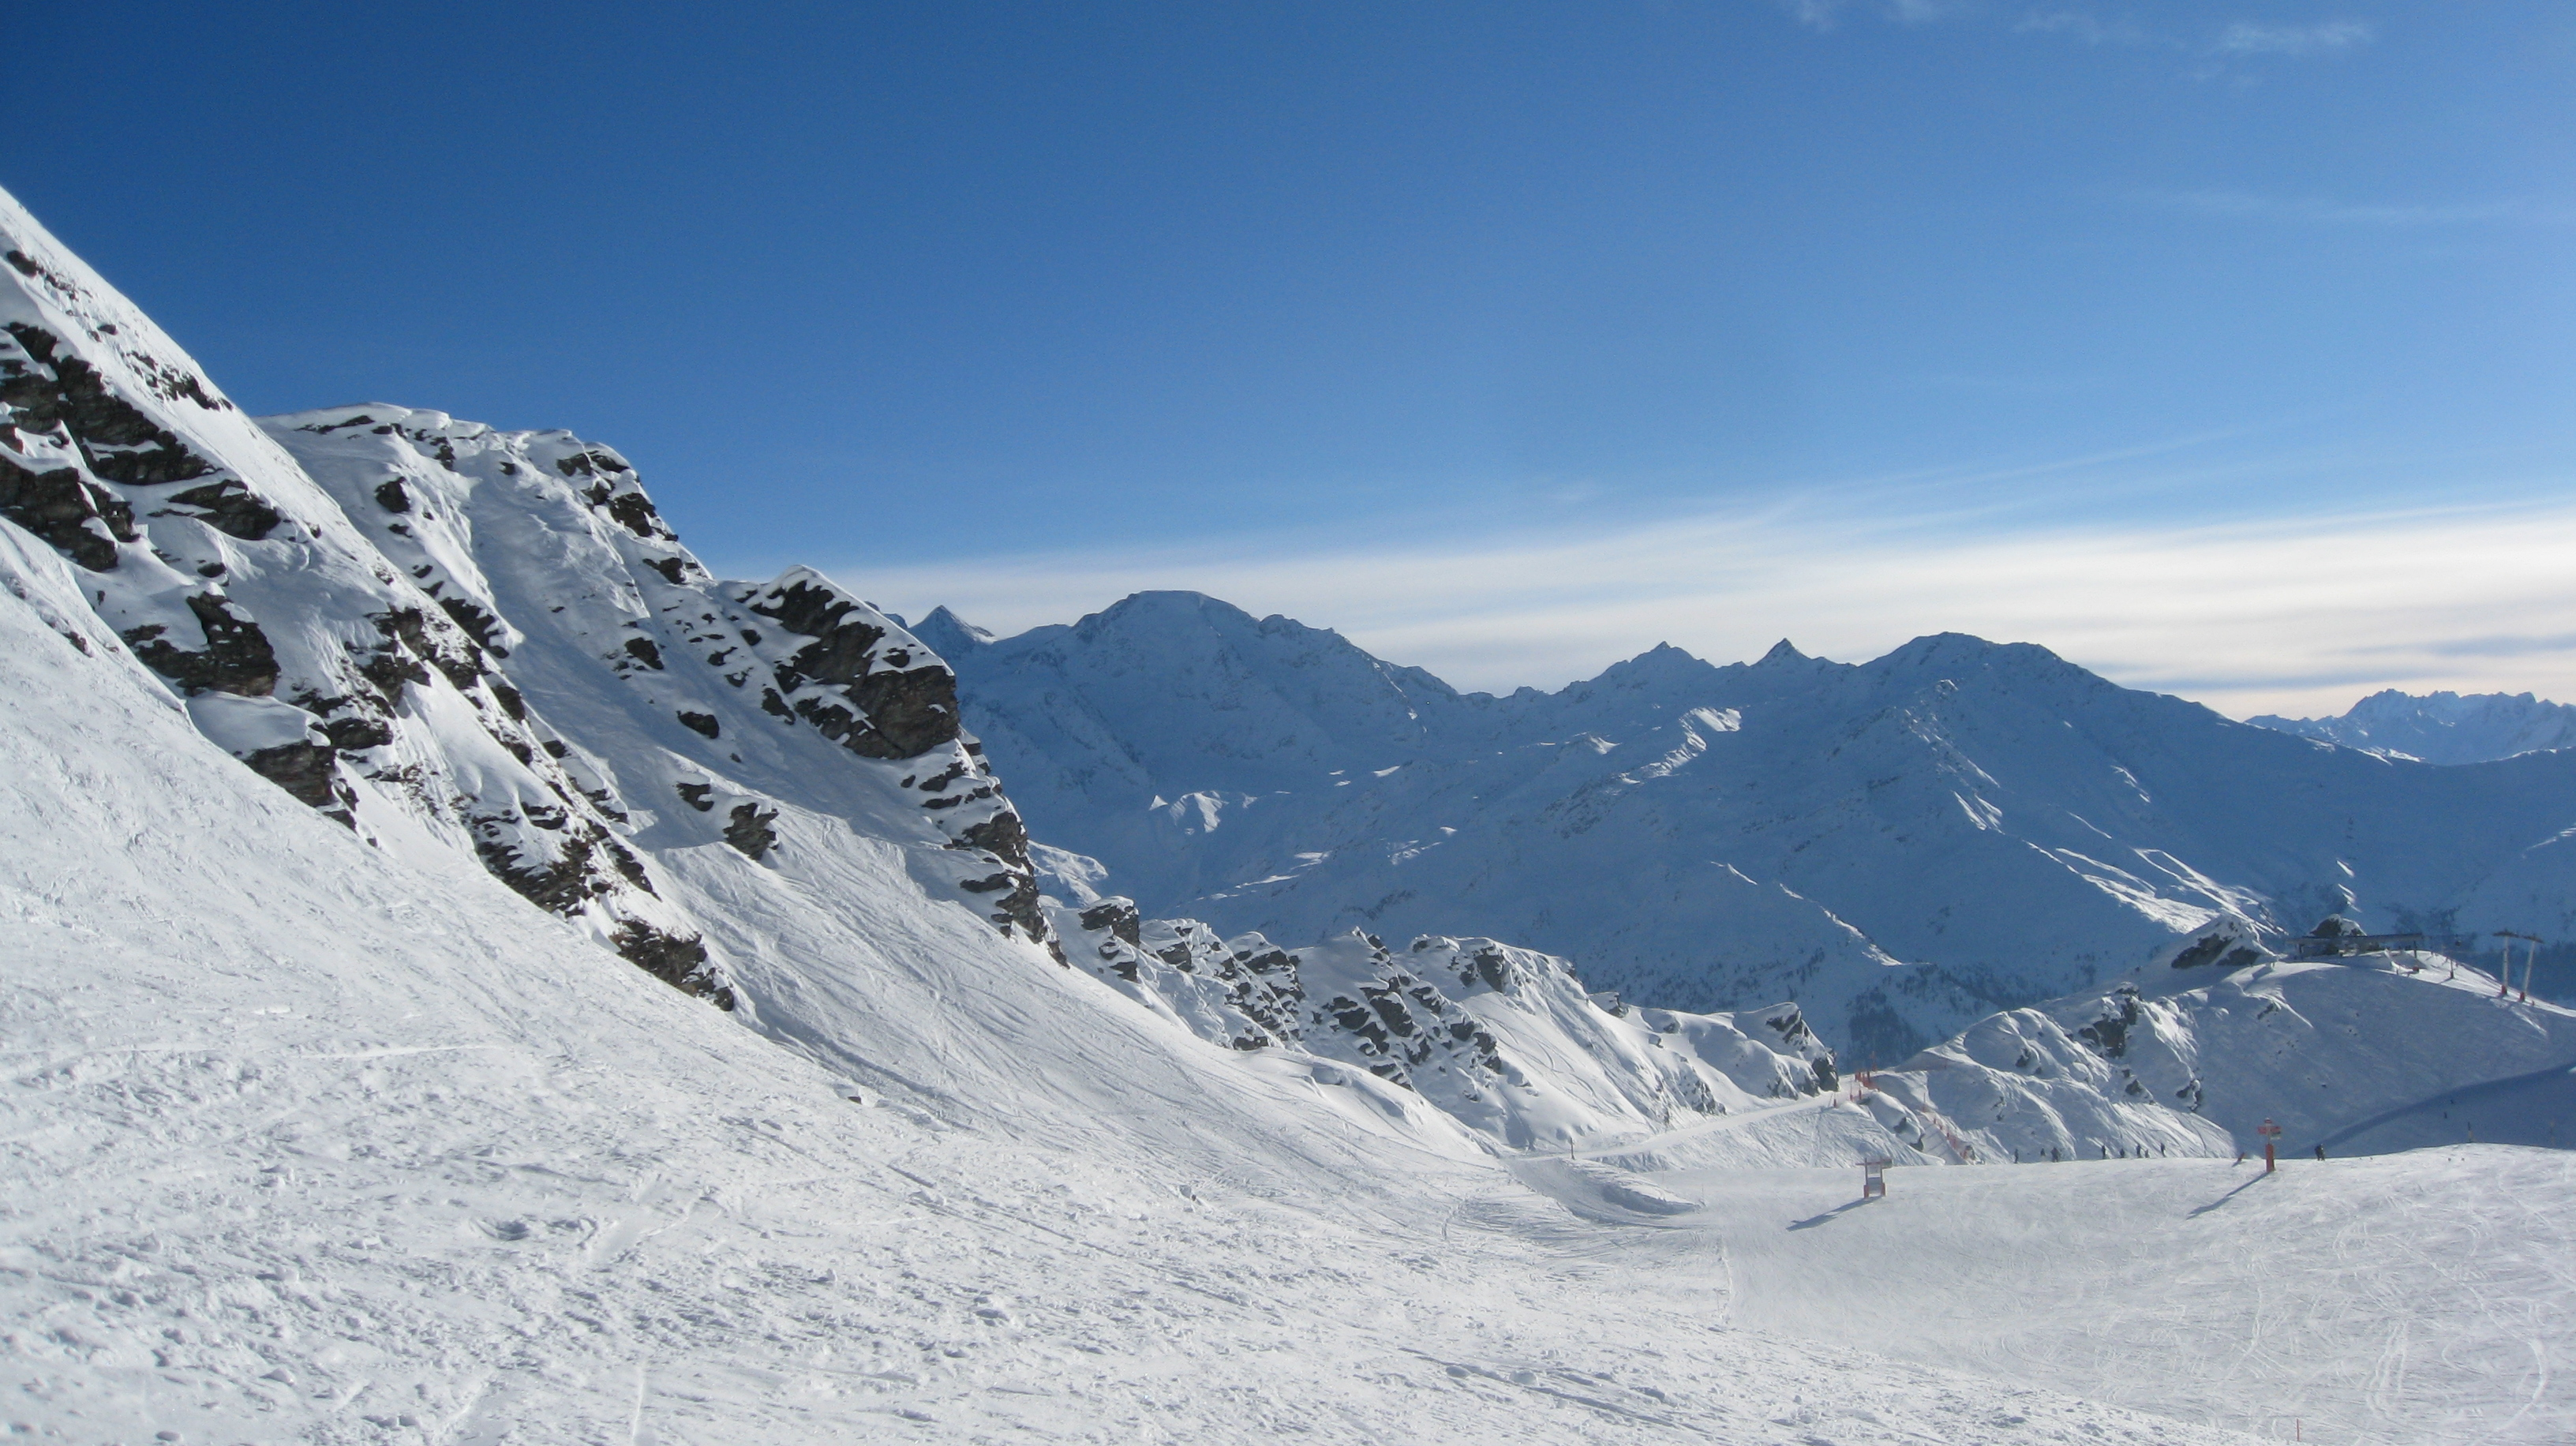 Just another day in paradise, Verbier